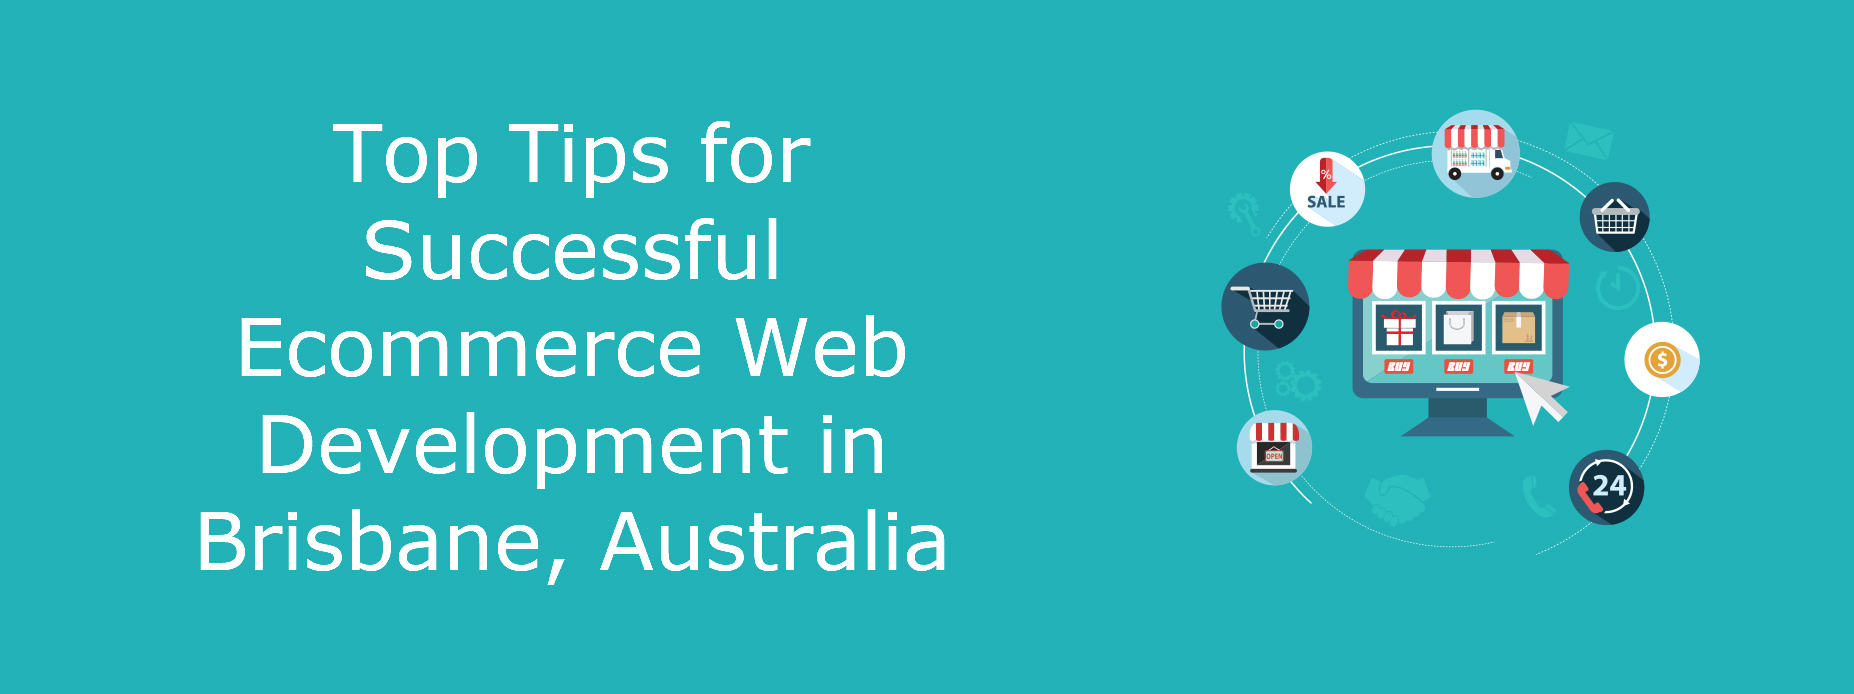 Top Tips for Successful Ecommerce Web Development in Brisbane, Australia